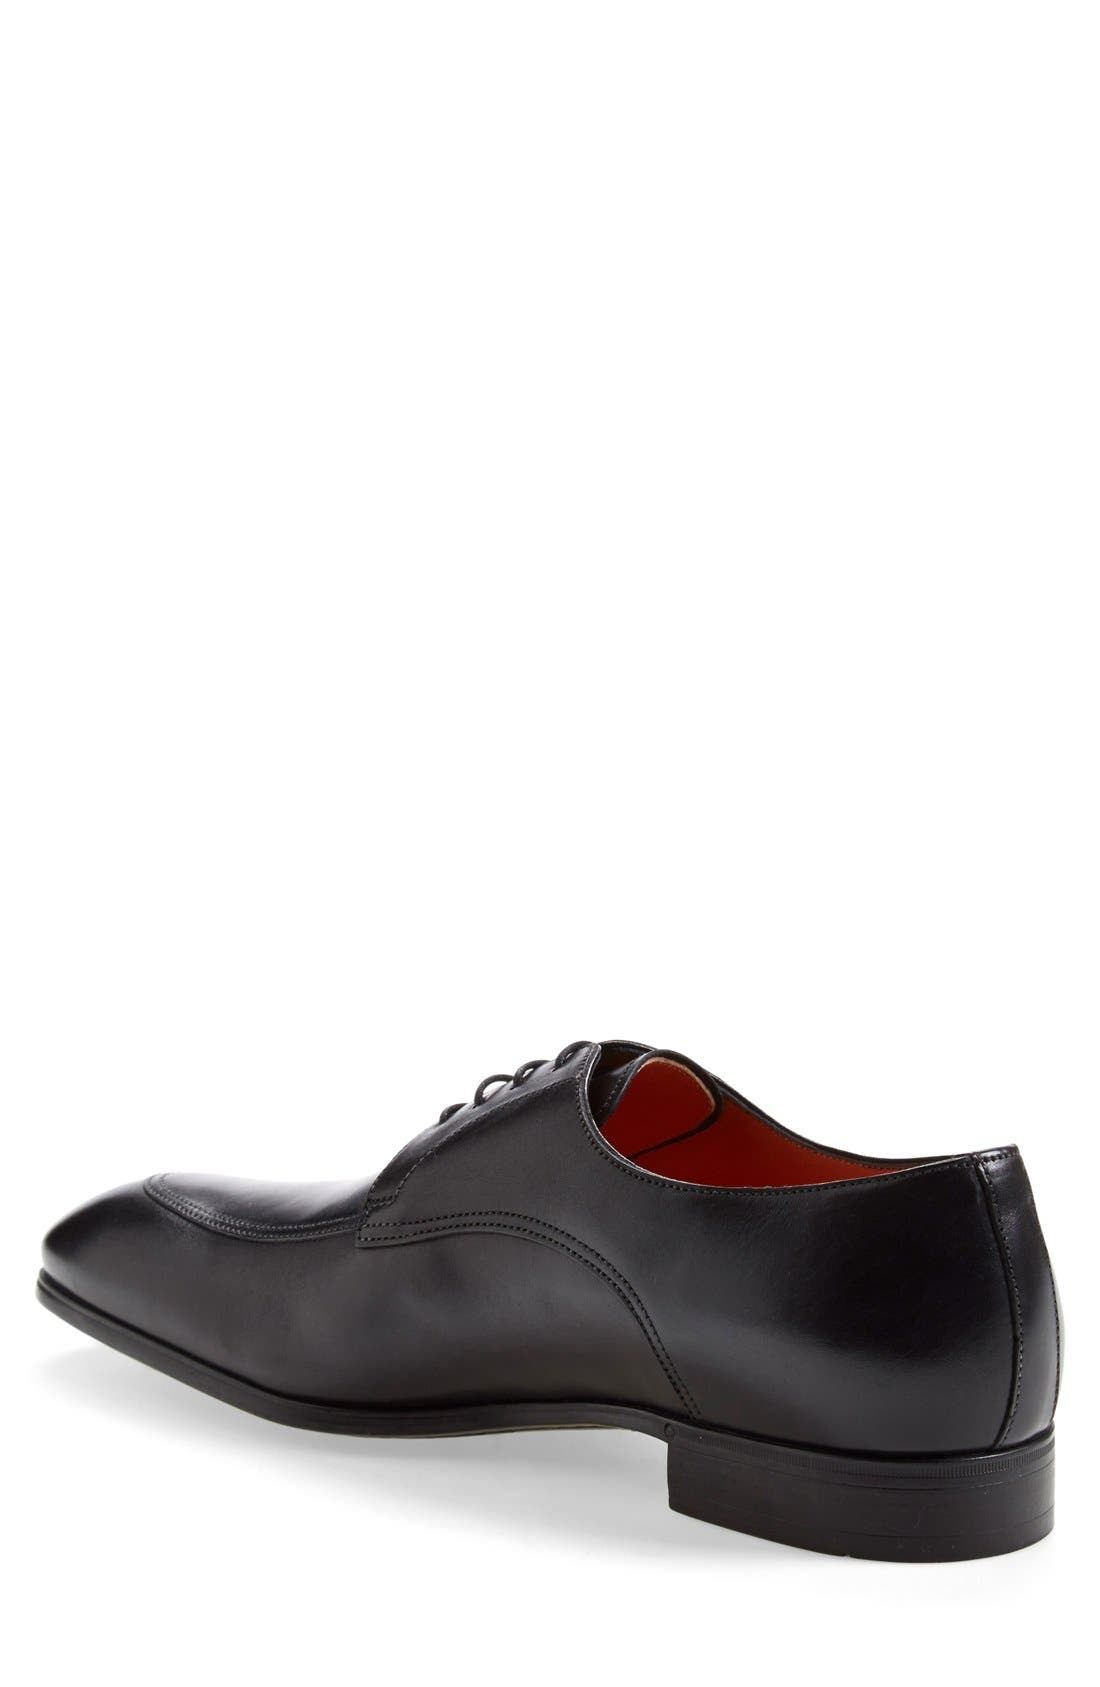 'Atwood' Apron Toe Derby,                             Alternate thumbnail 3, color,